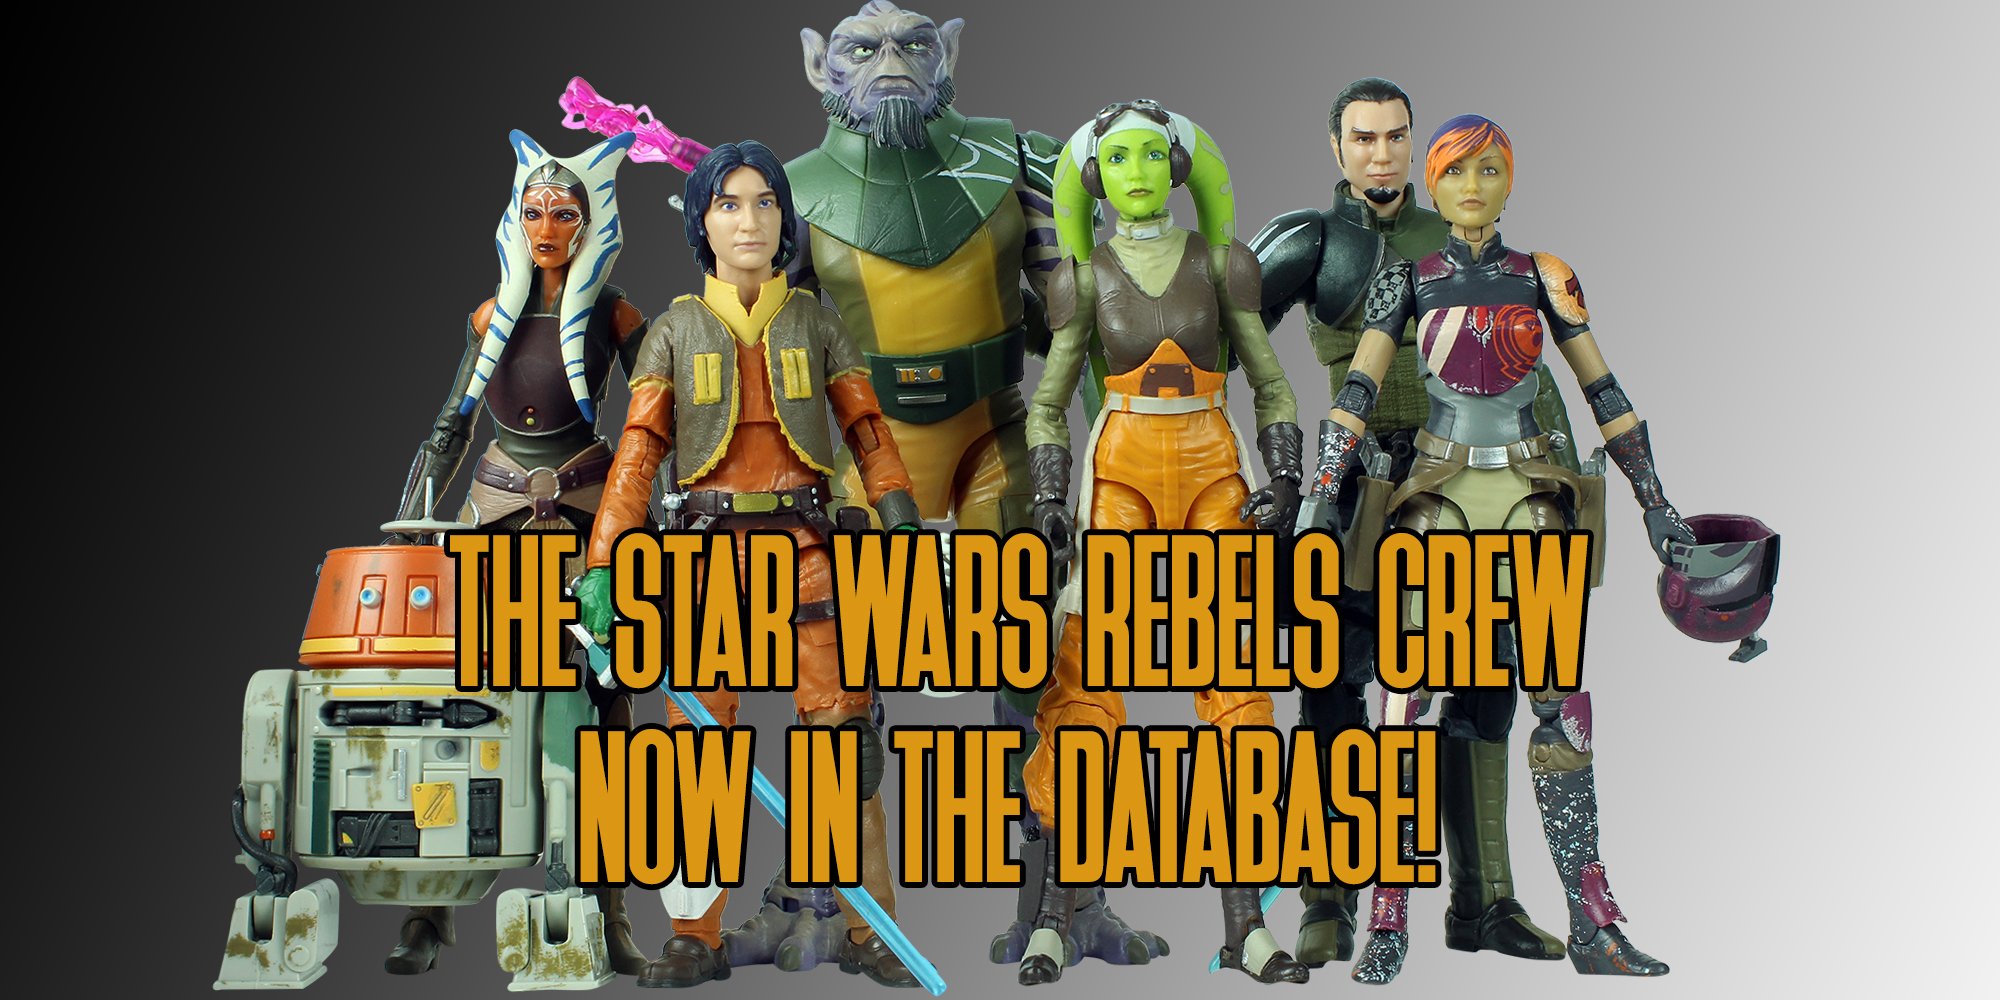 Black Series Star Wars Rebels